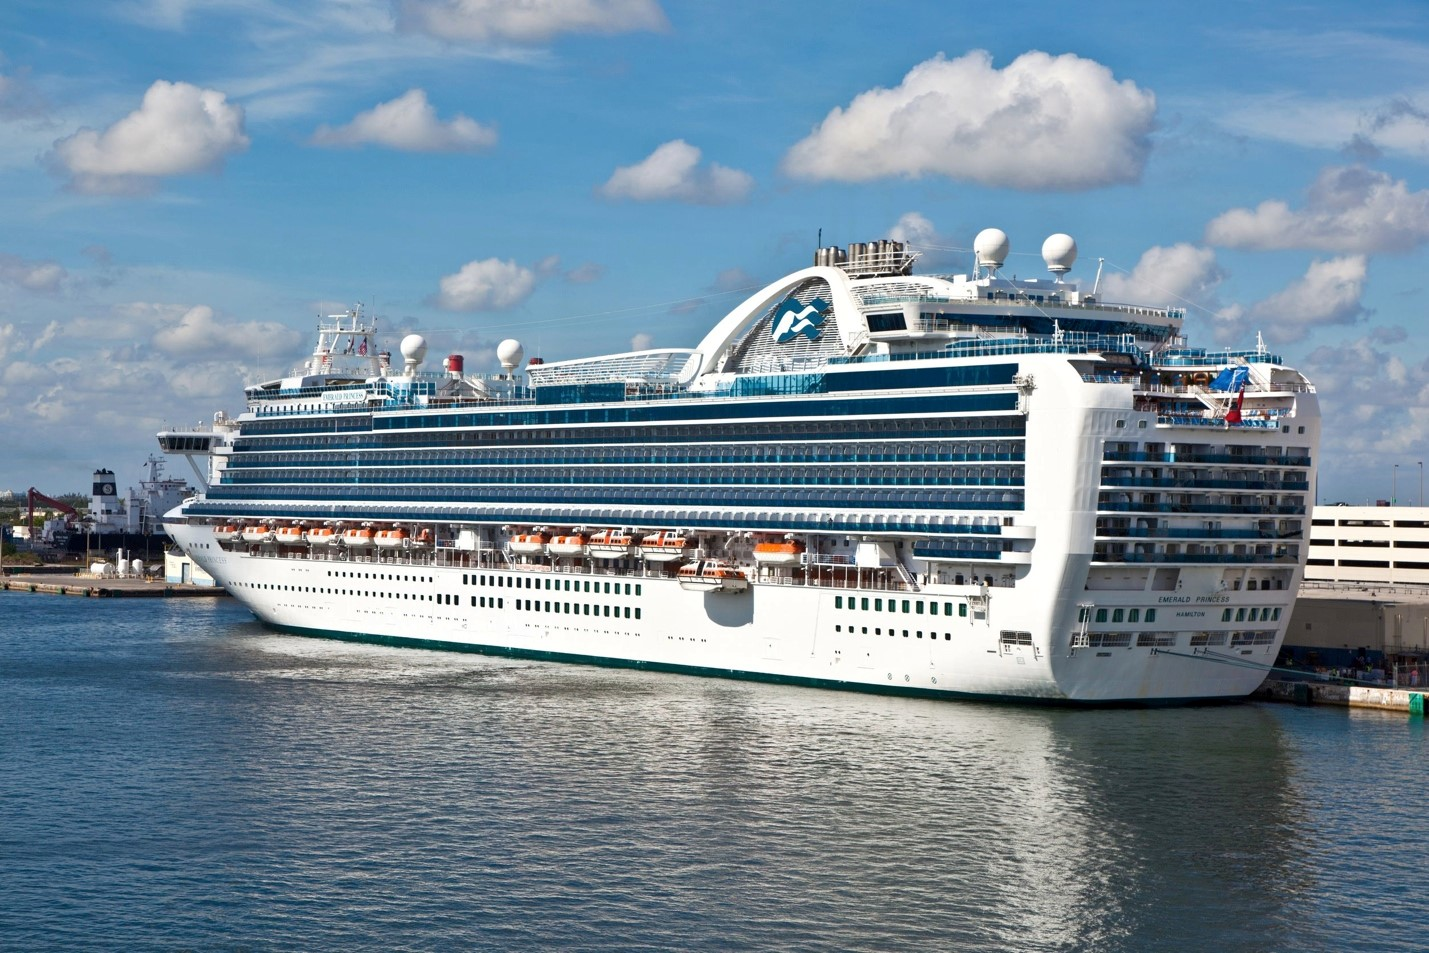 Princess Takes Cruisers to a Top-12 Pacific Northwest Resort